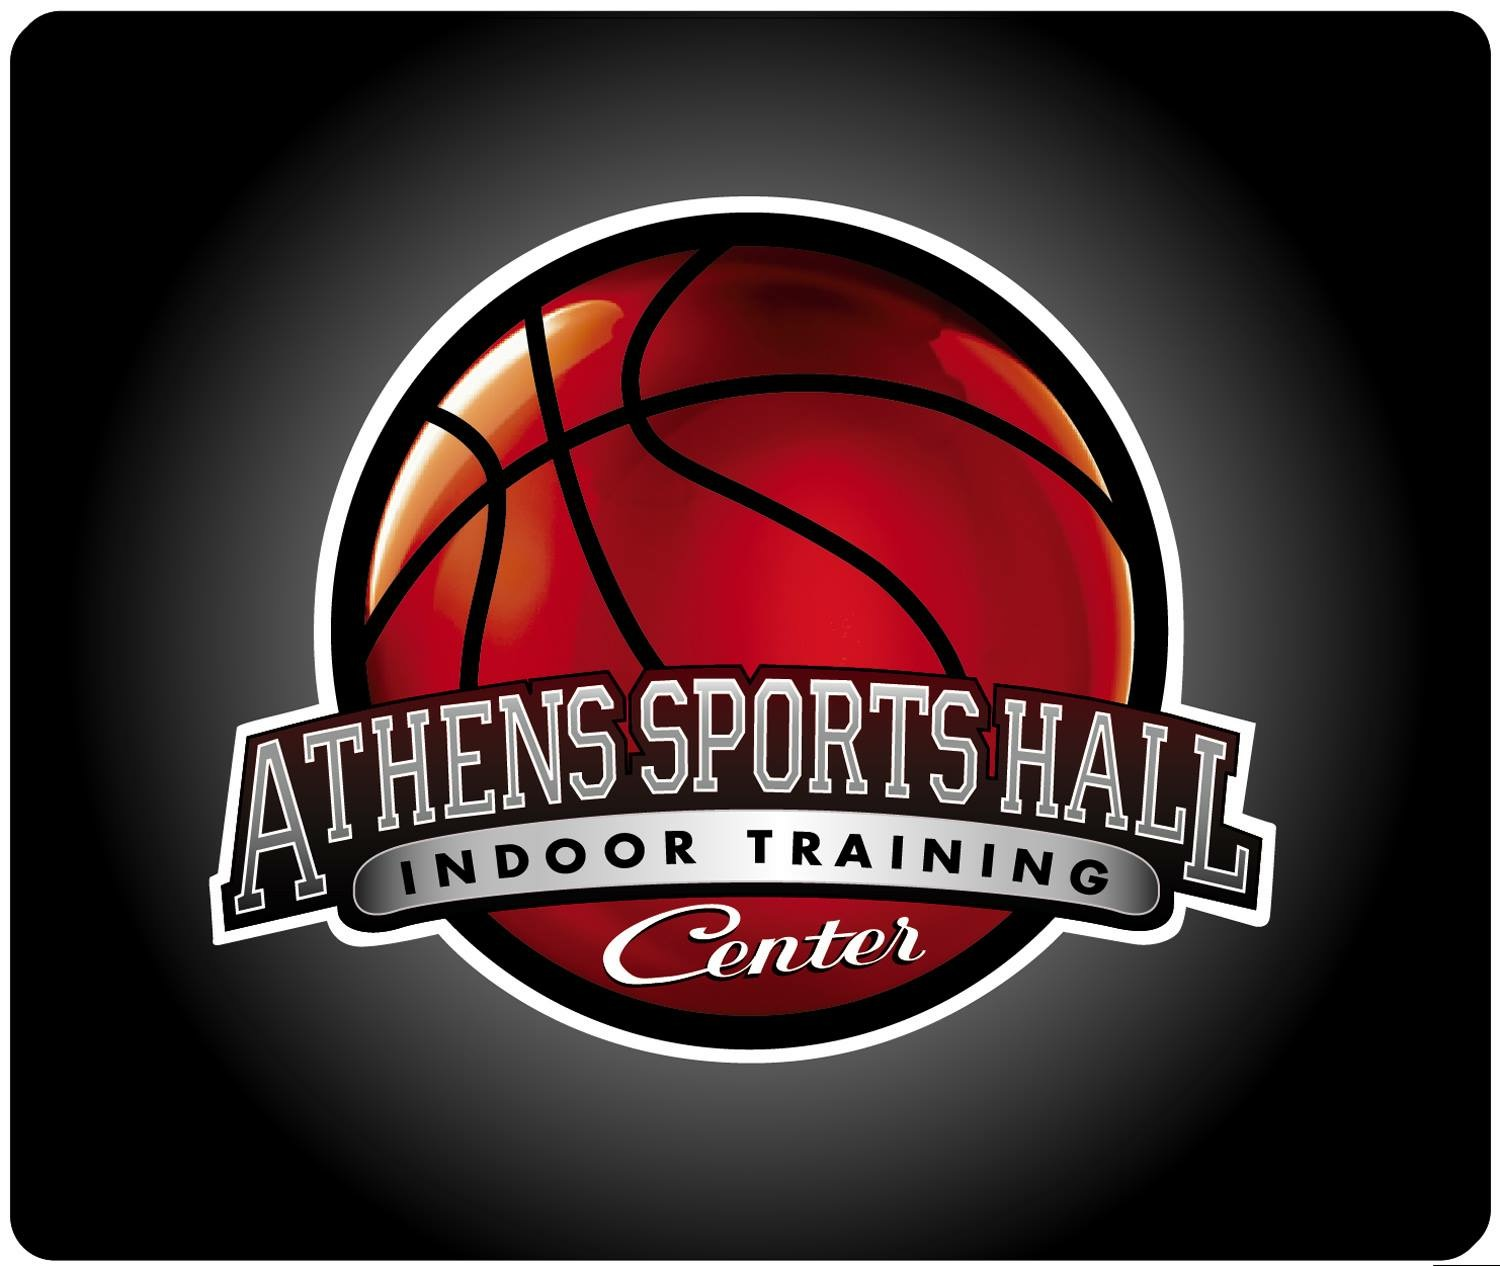 ATHENS SPORTS HALL